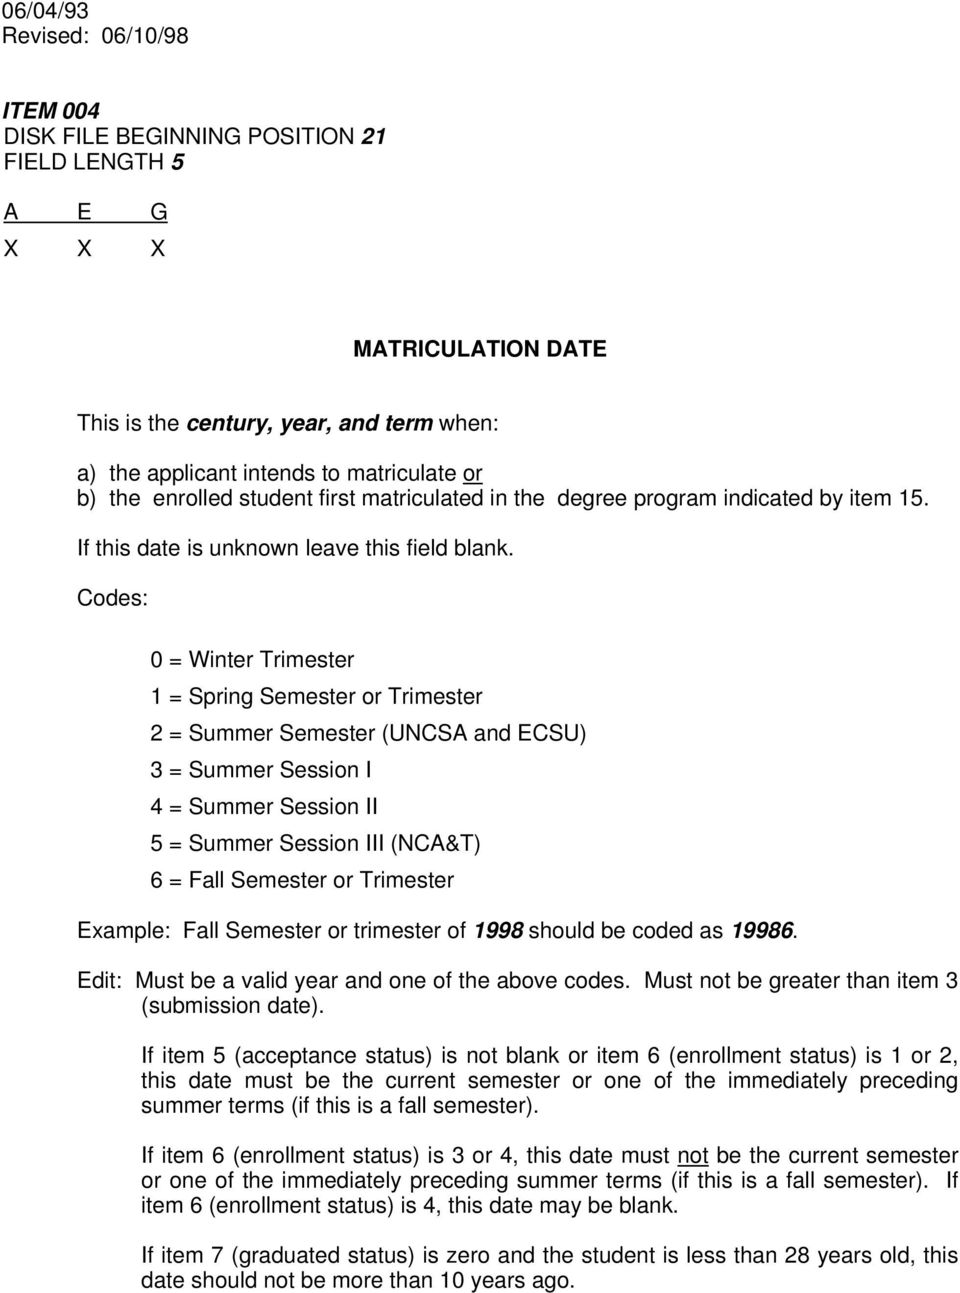 Codes: 0 = Winter Trimester 1 = Spring Semester or Trimester 2 = Summer Semester (UNCSA and ECSU) 3 = Summer Session I 4 = Summer Session II 5 = Summer Session III (NCA&T) 6 = Fall Semester or